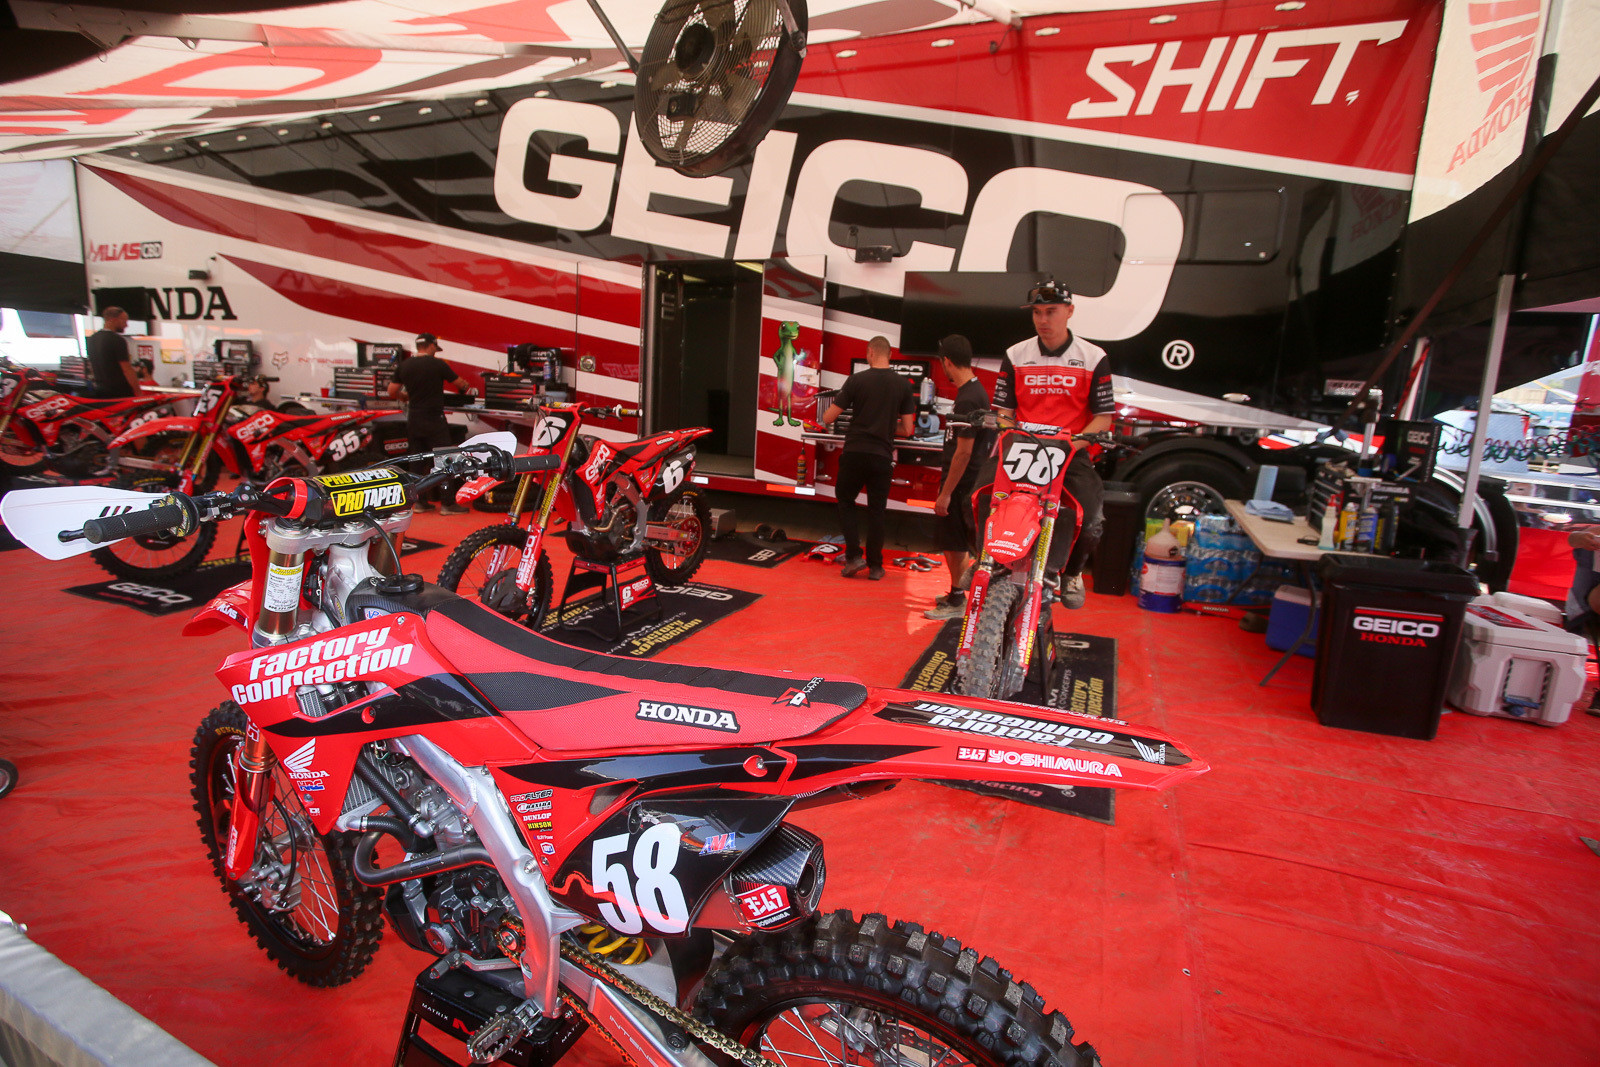 The GEICO Honda gang announced that they're done...at least for now. They're still hunting for new sponsorship, and hope to be back in the future. But for now, they're on the sidelines. During Friday's amateur racing, the team had Hunter Yoder under their awning for his only appearance there.